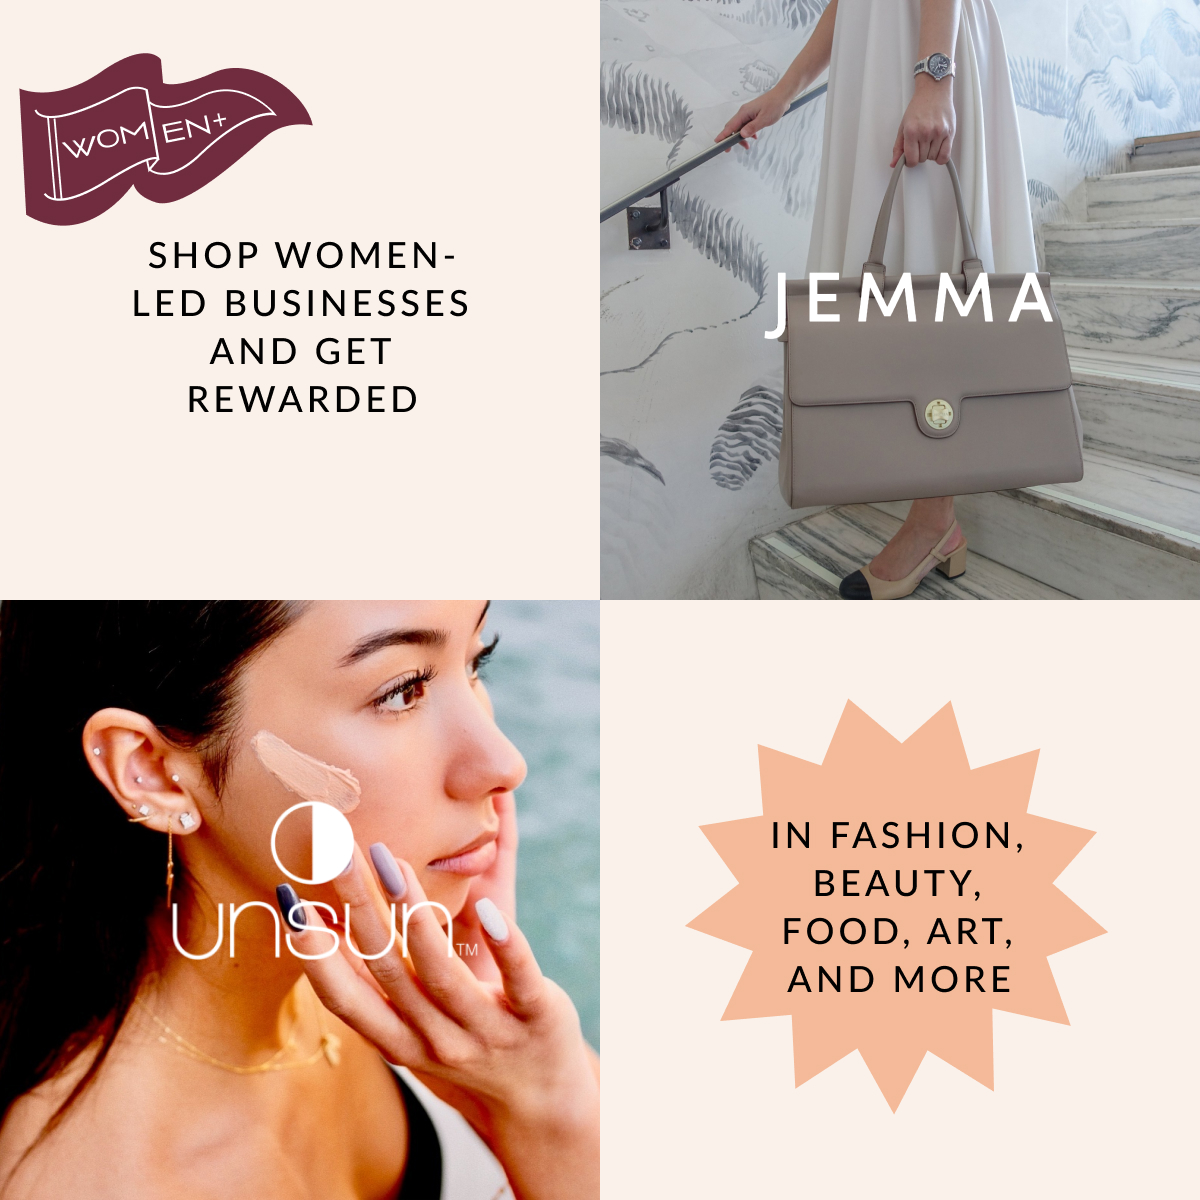 Image of a woman holding a bag you can find on Jemma, an iconic work bag brand, next to an image of a woman using UnSun Cosmetics, also a women-led brand.